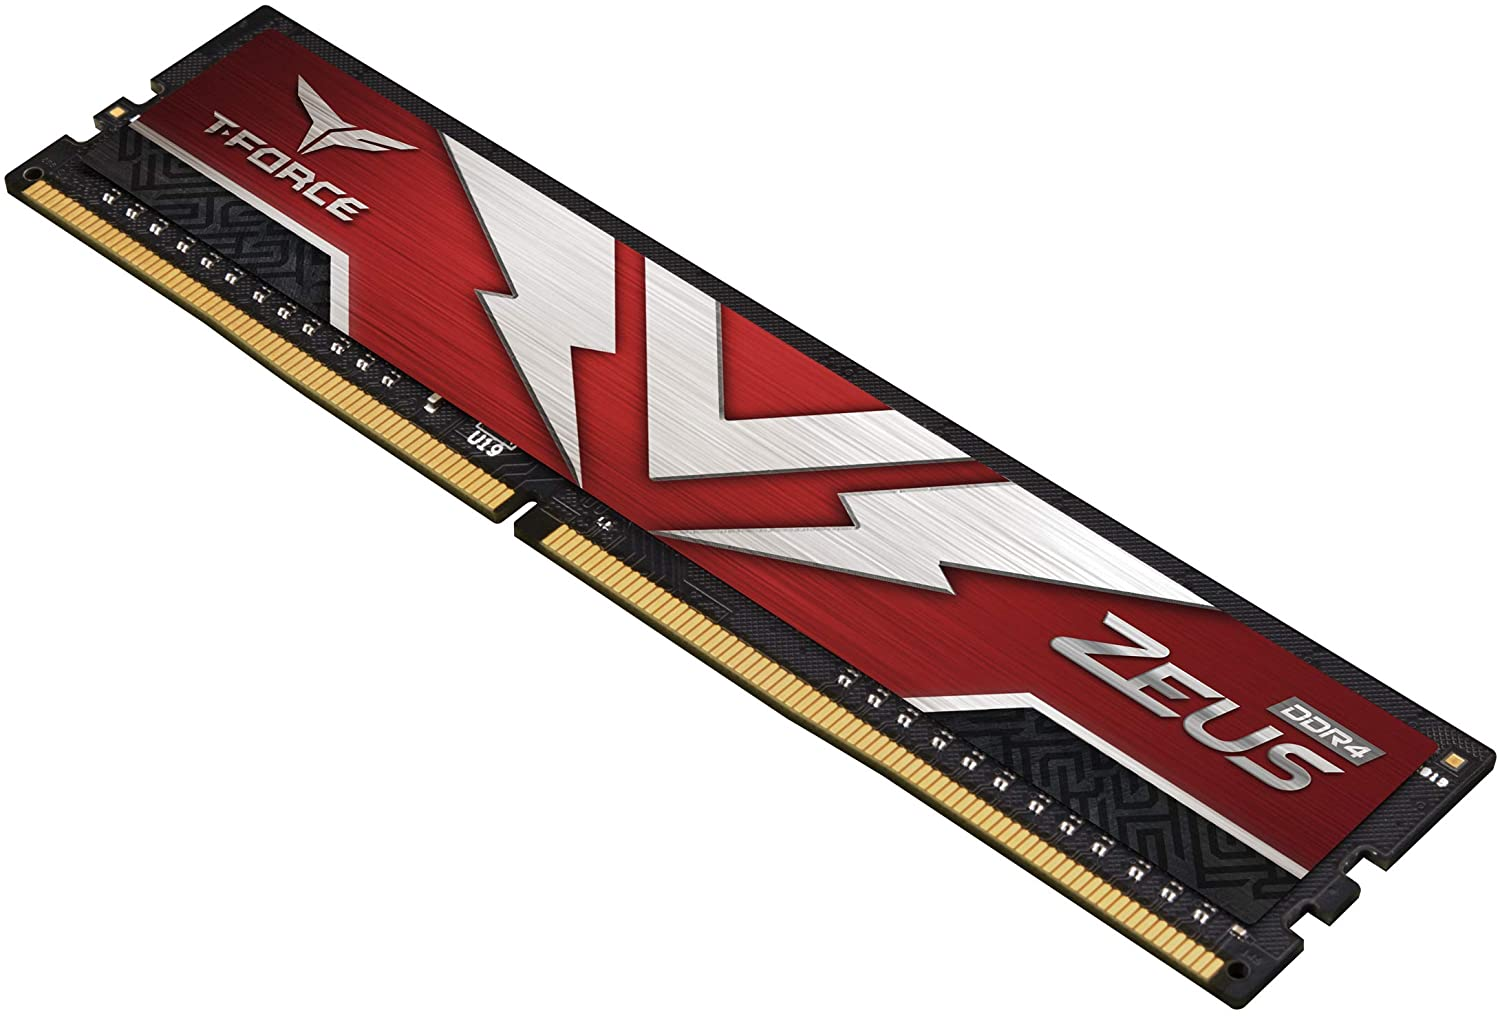 Team Group Kit 32GB (2 x 16GB) DDR4 3200MHz Zeus CL20